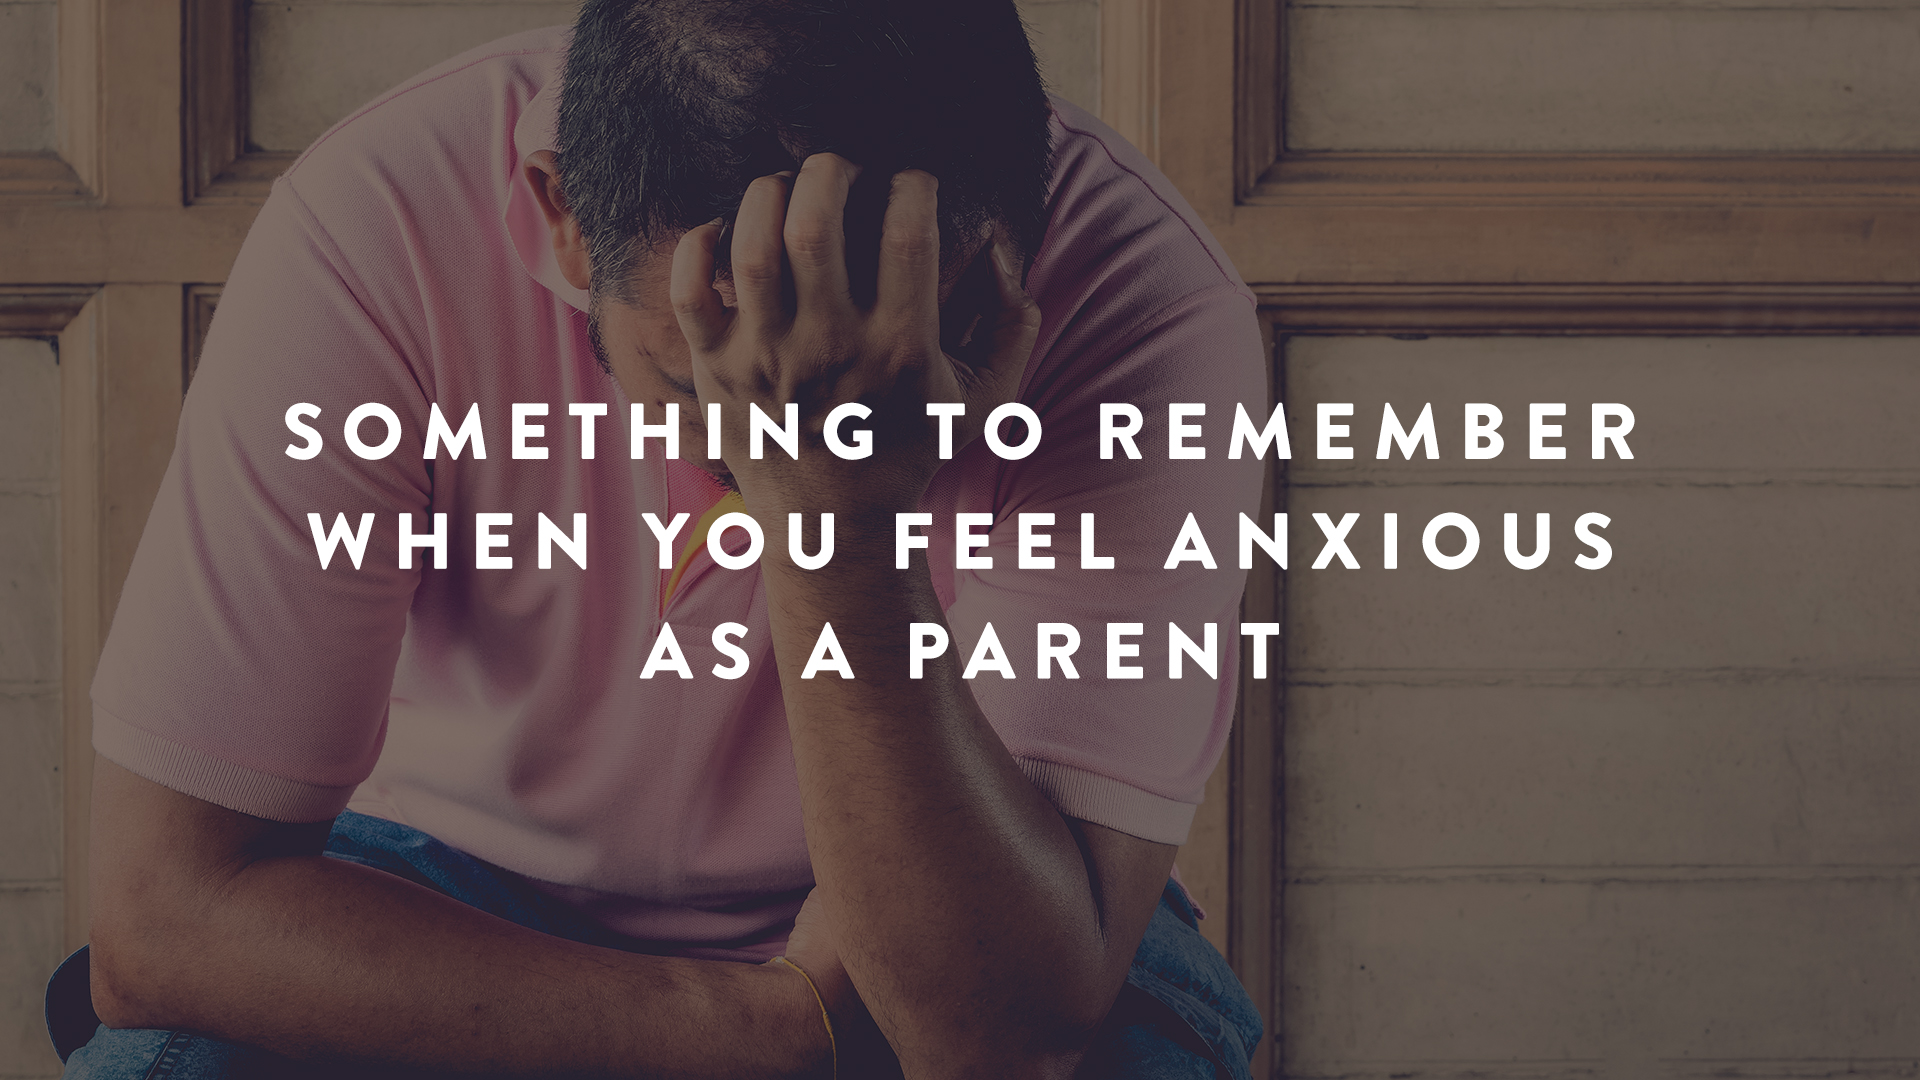 Something to Remember When You Feel Anxious as a Parent | Parent Cue Blog